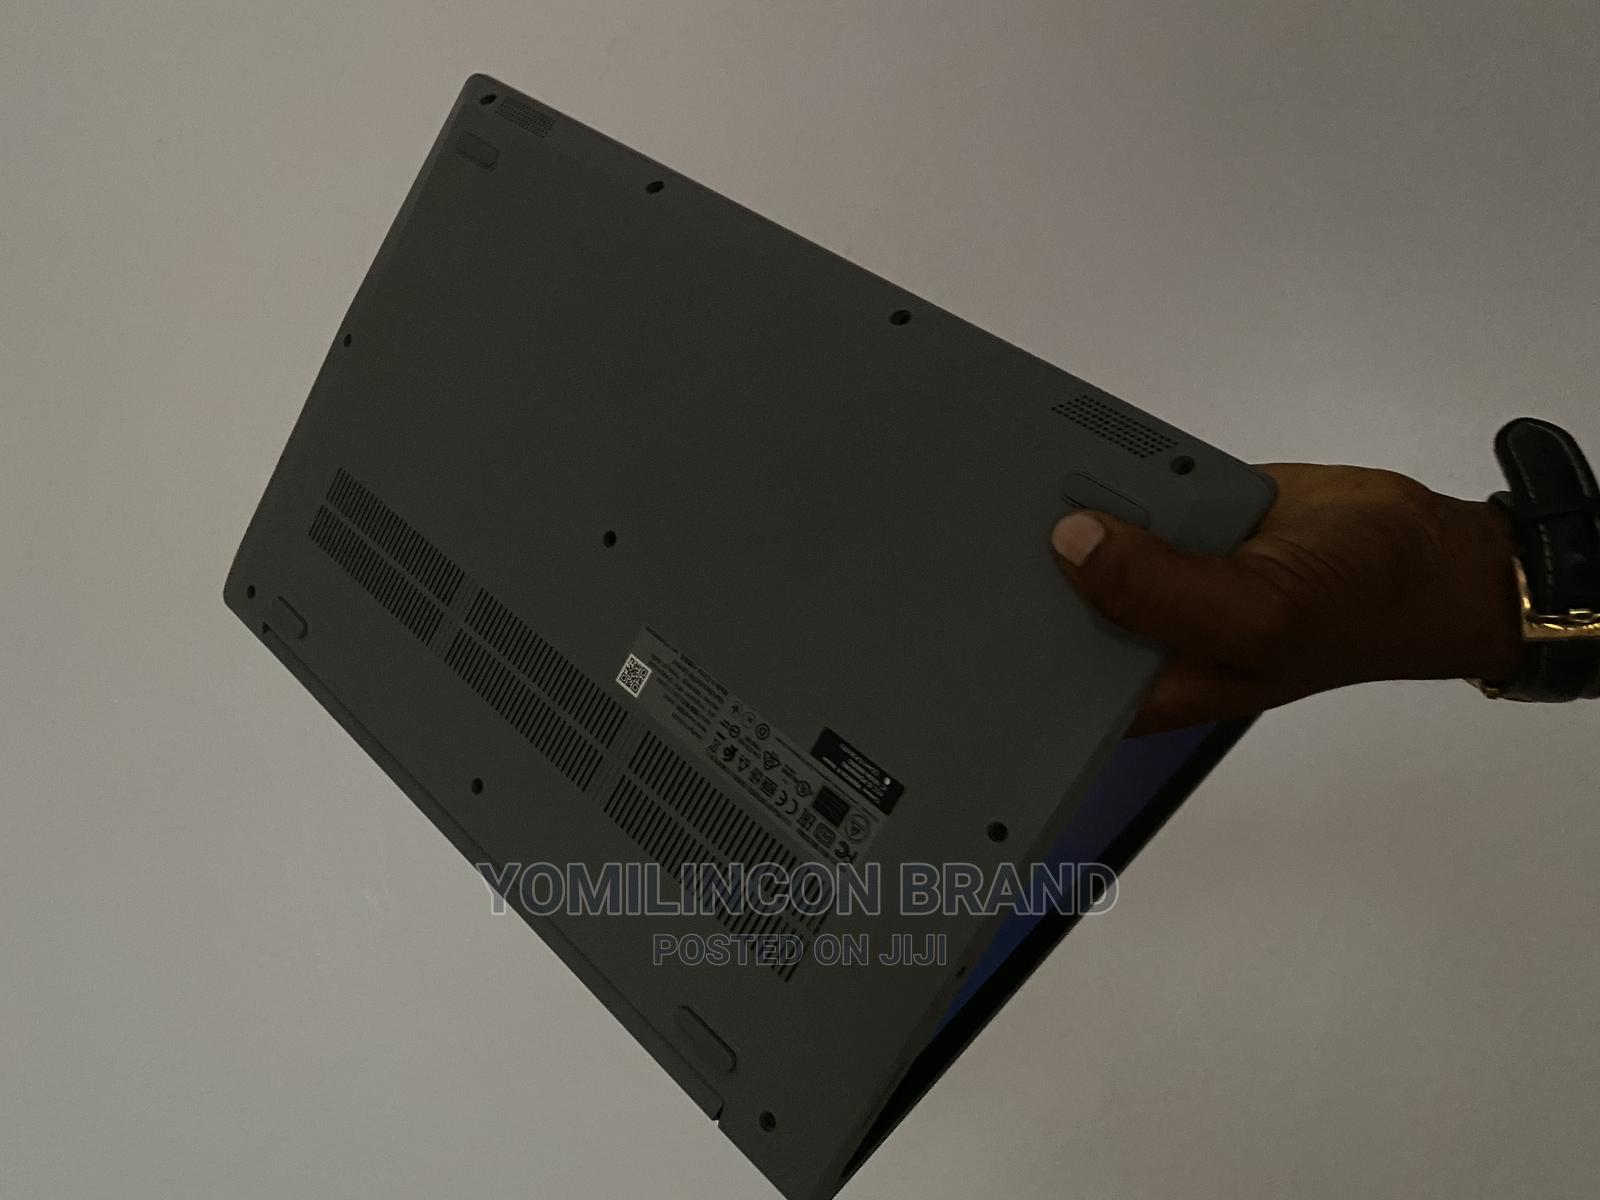 Laptop Lenovo IdeaPad S300 8GB Intel Core I3 HDD 256GB   Laptops & Computers for sale in Ikorodu, Lagos State, Nigeria